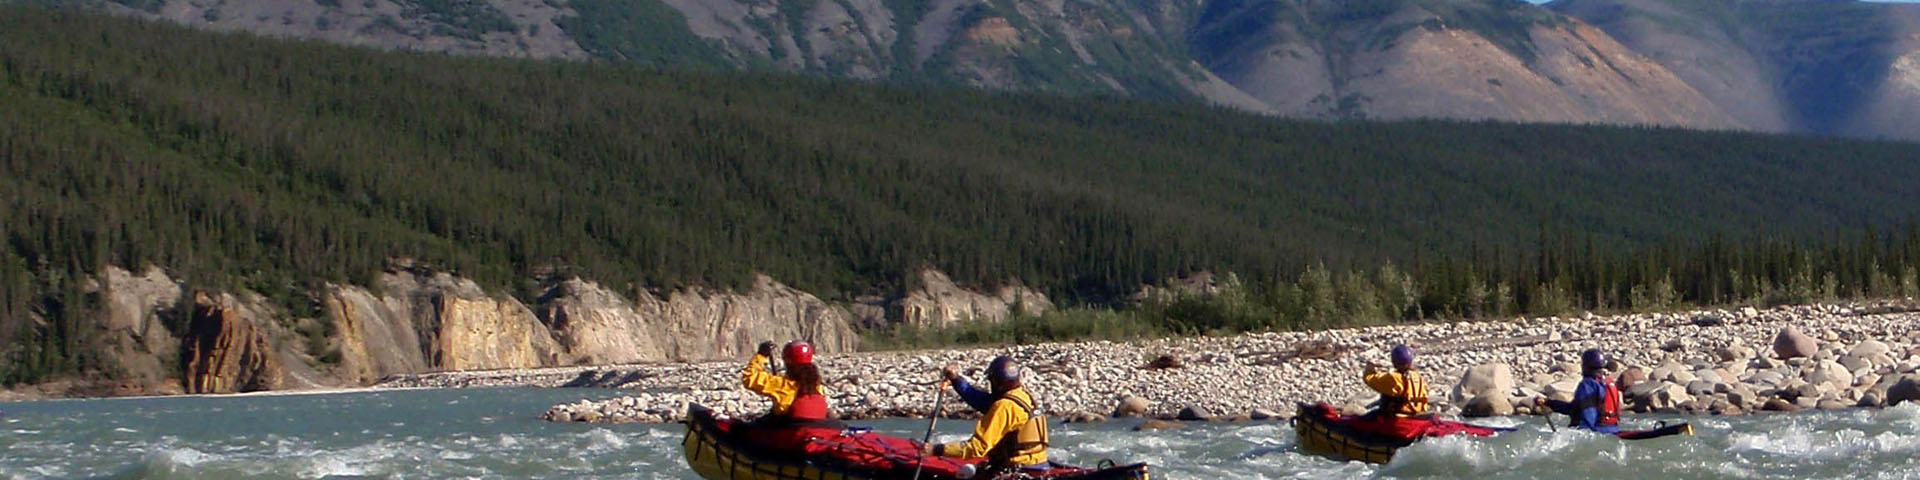 Mountain River Canoe Trip by Black Feather - Image 256